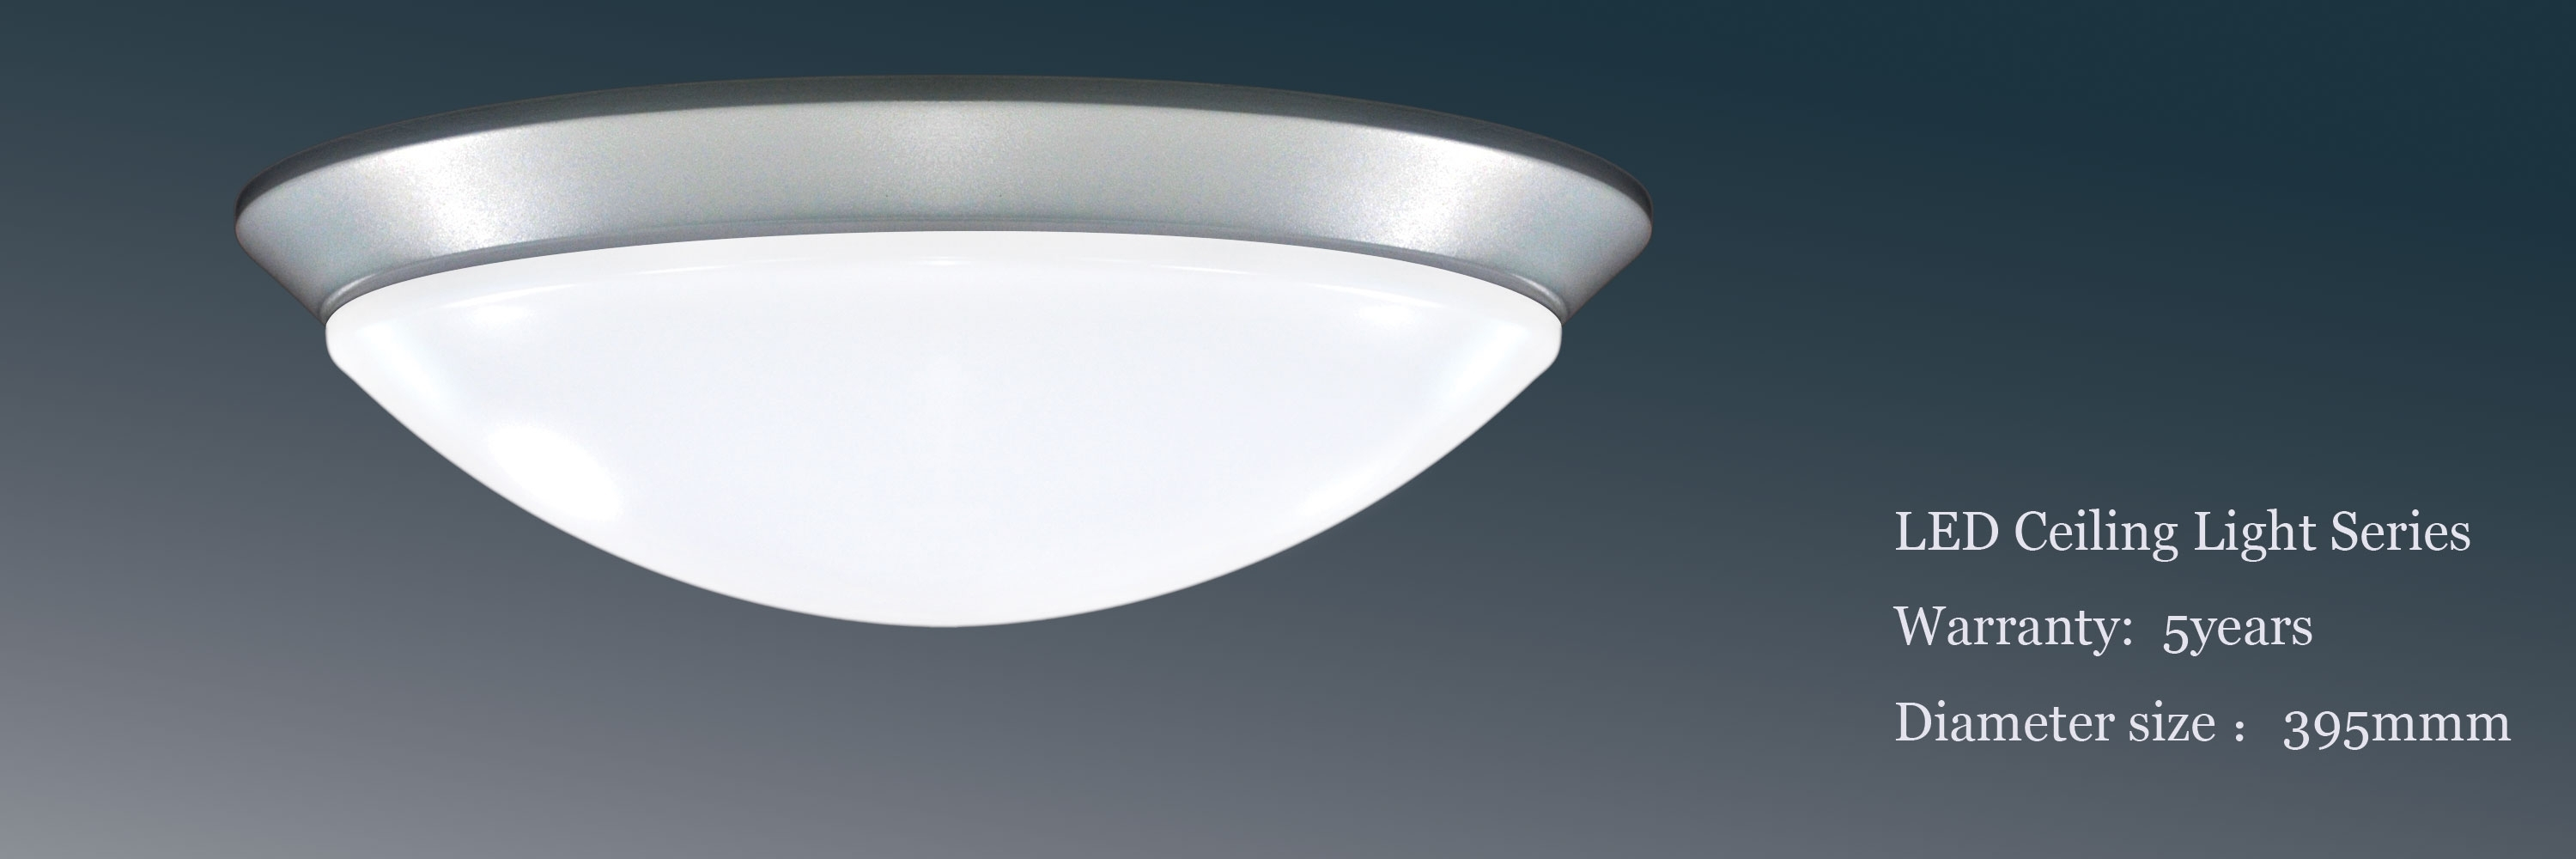 Inspiration about Decorating : Outdoor Ceiling Light For Boats Led 00599Wh Aaa World Regarding Outdoor Ceiling Led Lights (#14 of 15)